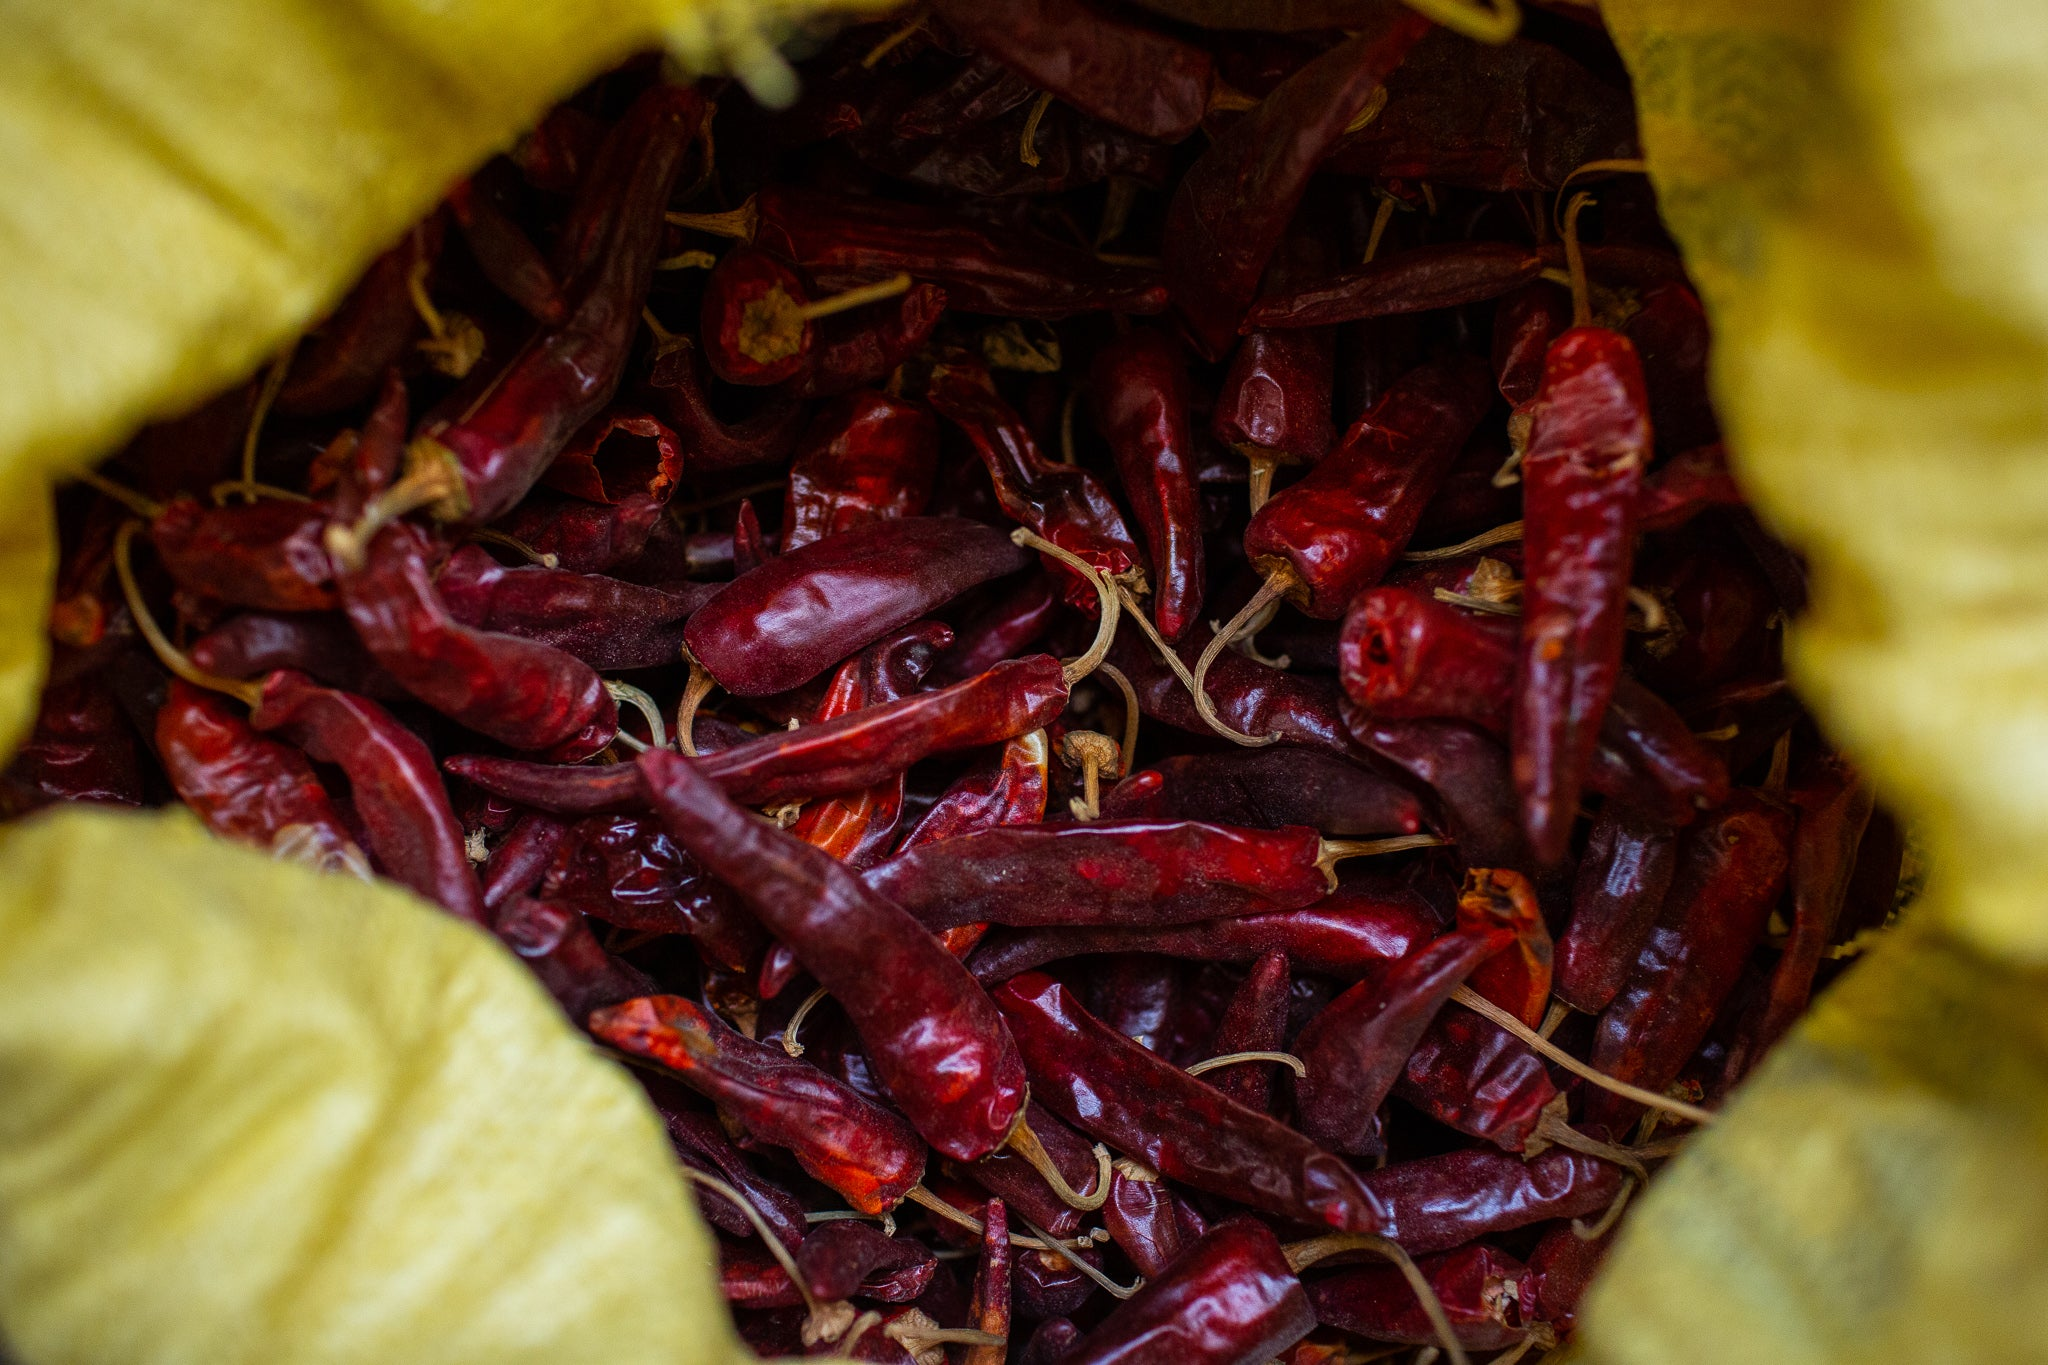 Whole Kashmiri chillies in a yellow bag